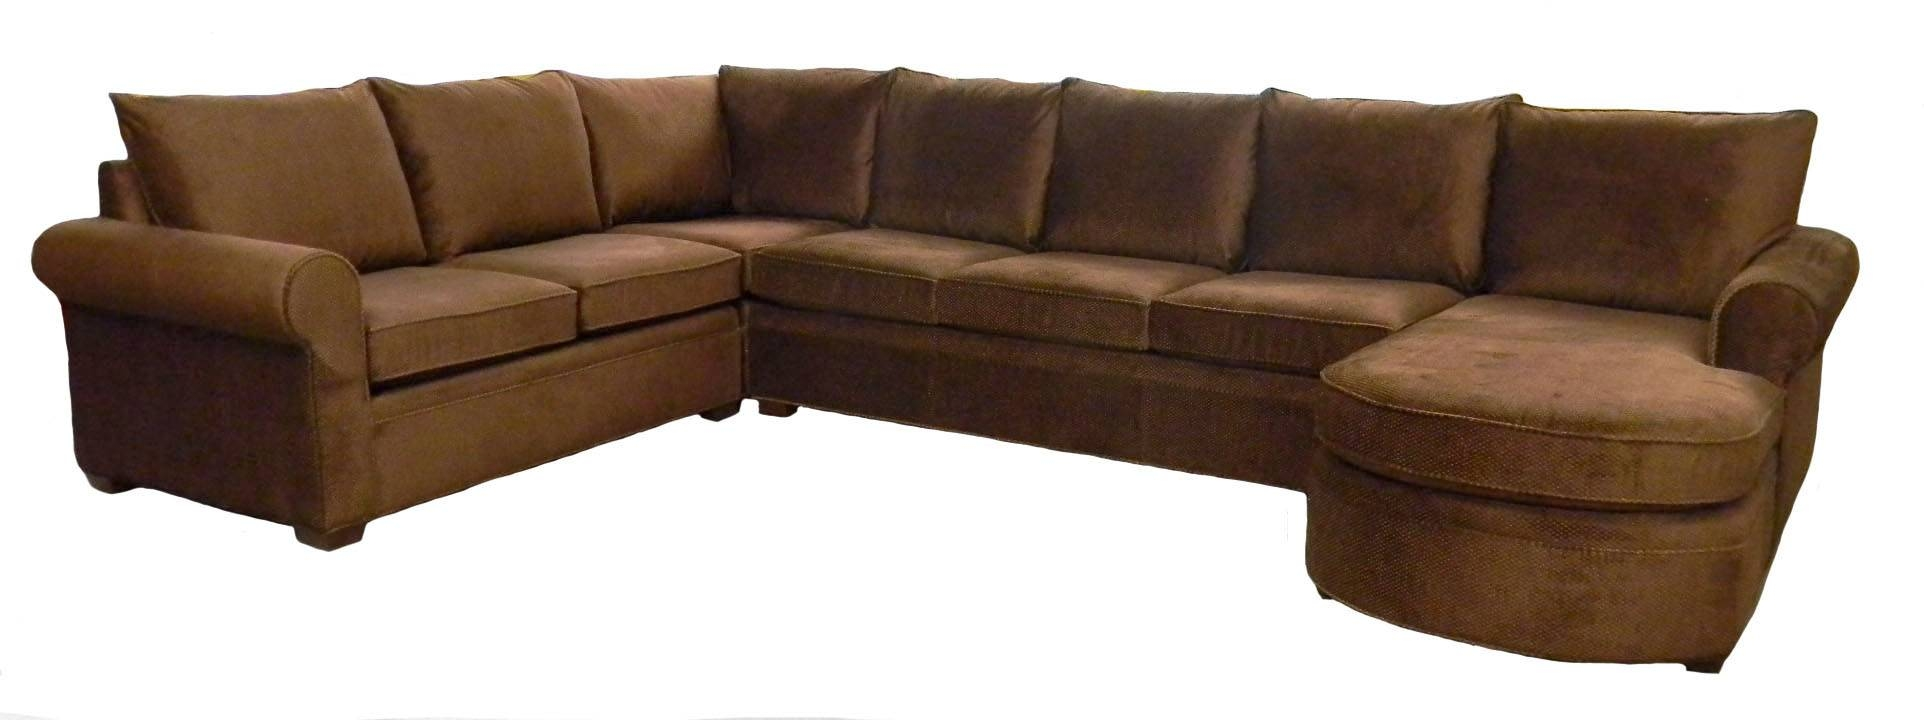 Photos Examples Custom Sectional Sofas Carolina Chair Furniture for 6 Foot Sofas (Image 10 of 30)